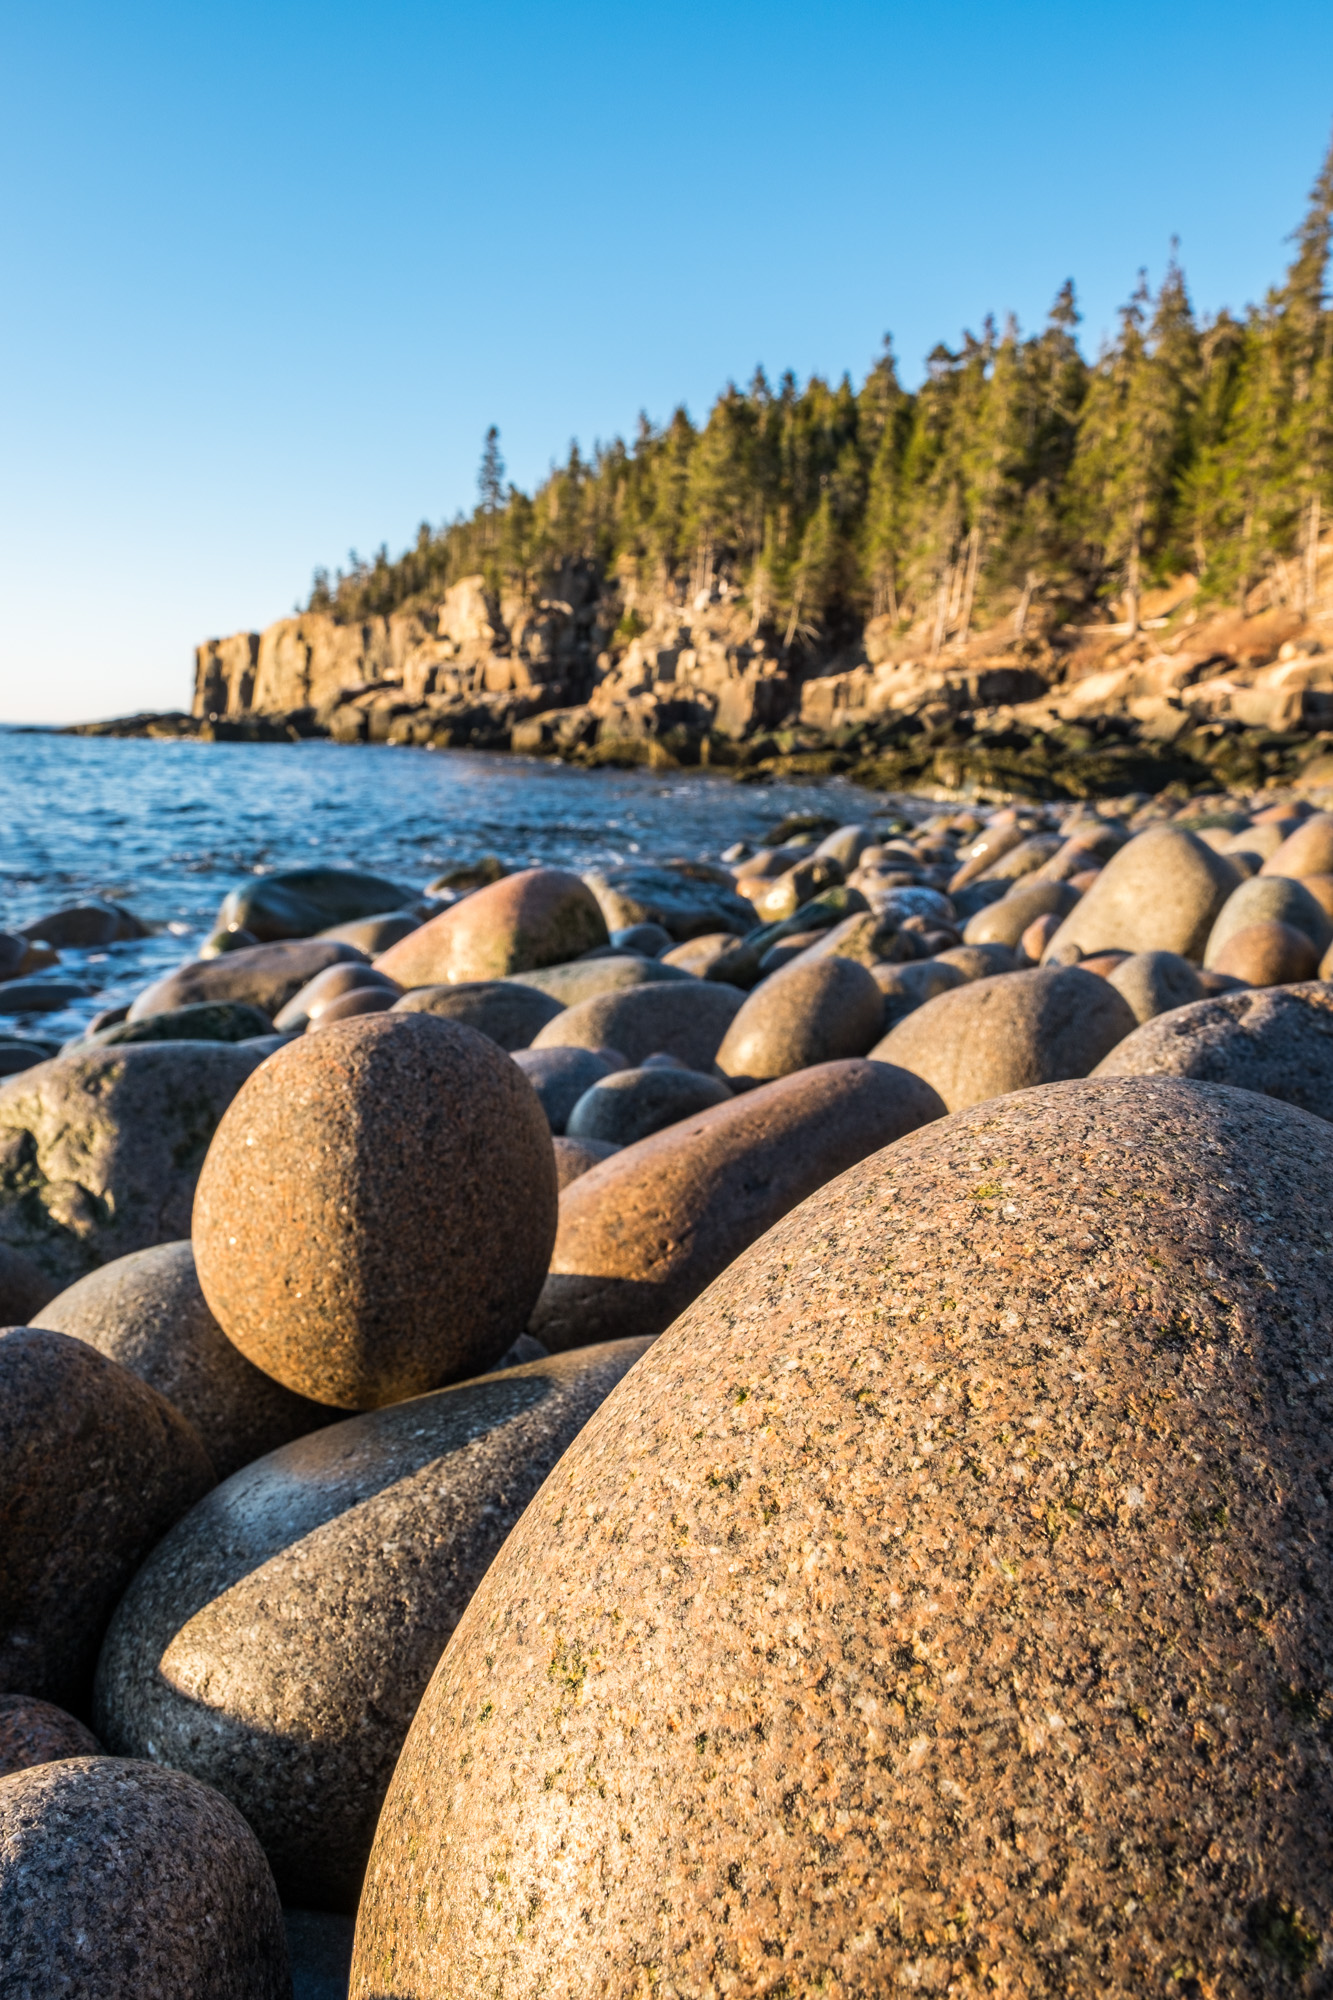 One of my favorite photo locations is Boulder Beach, located along the coastal trail.